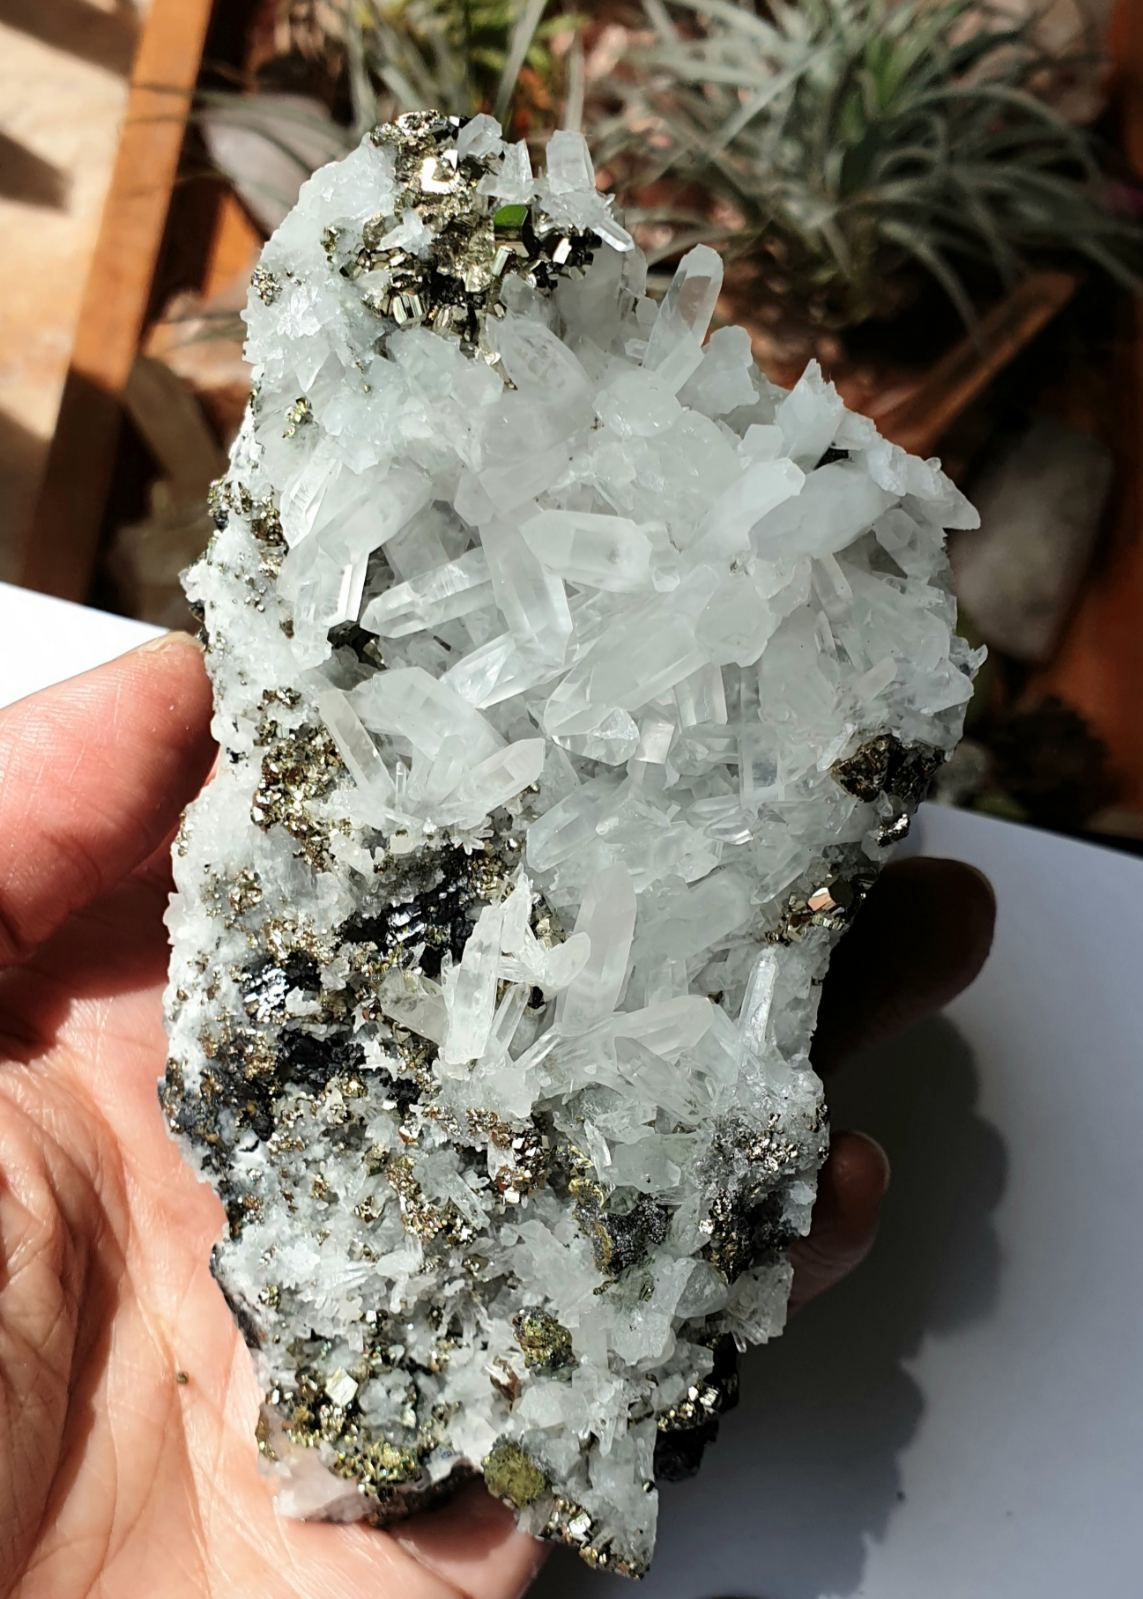 PYR-18: Crystal Quartz with Pyrite Cluster (Huanzala Mine, Peru)